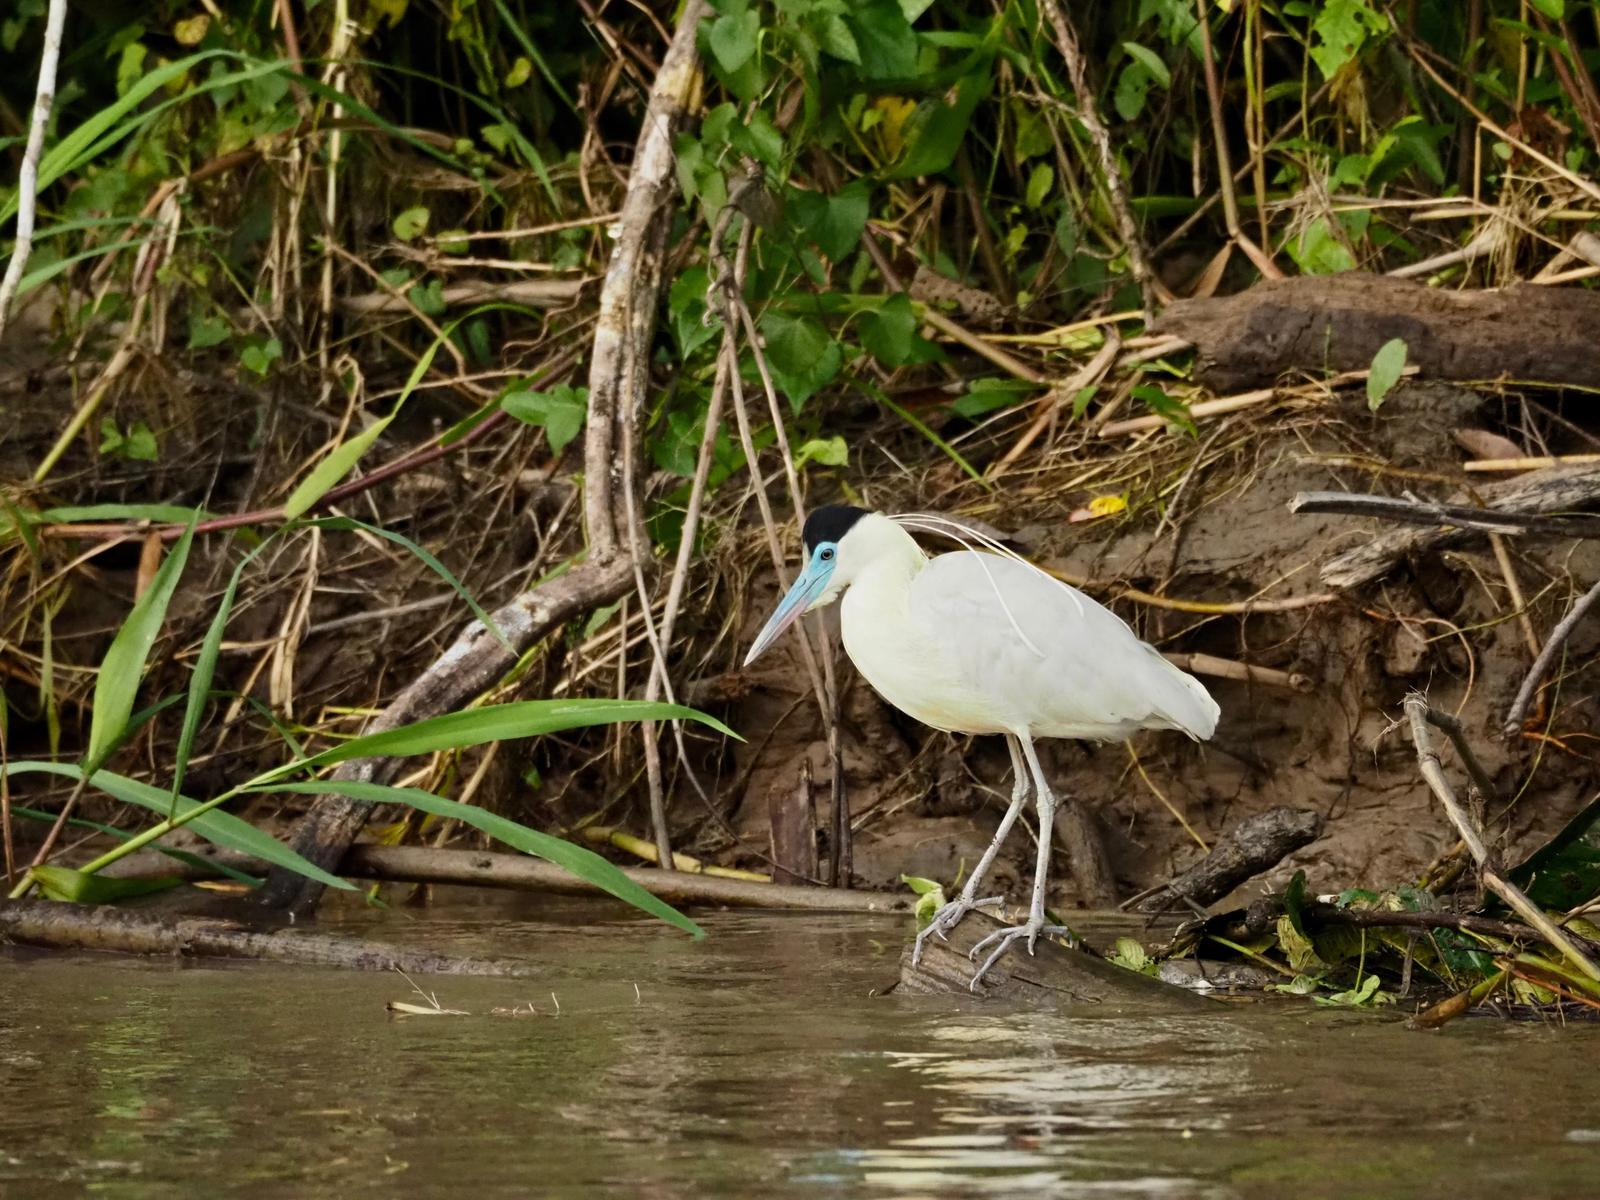 Capped Heron Photo by Susan Leverton